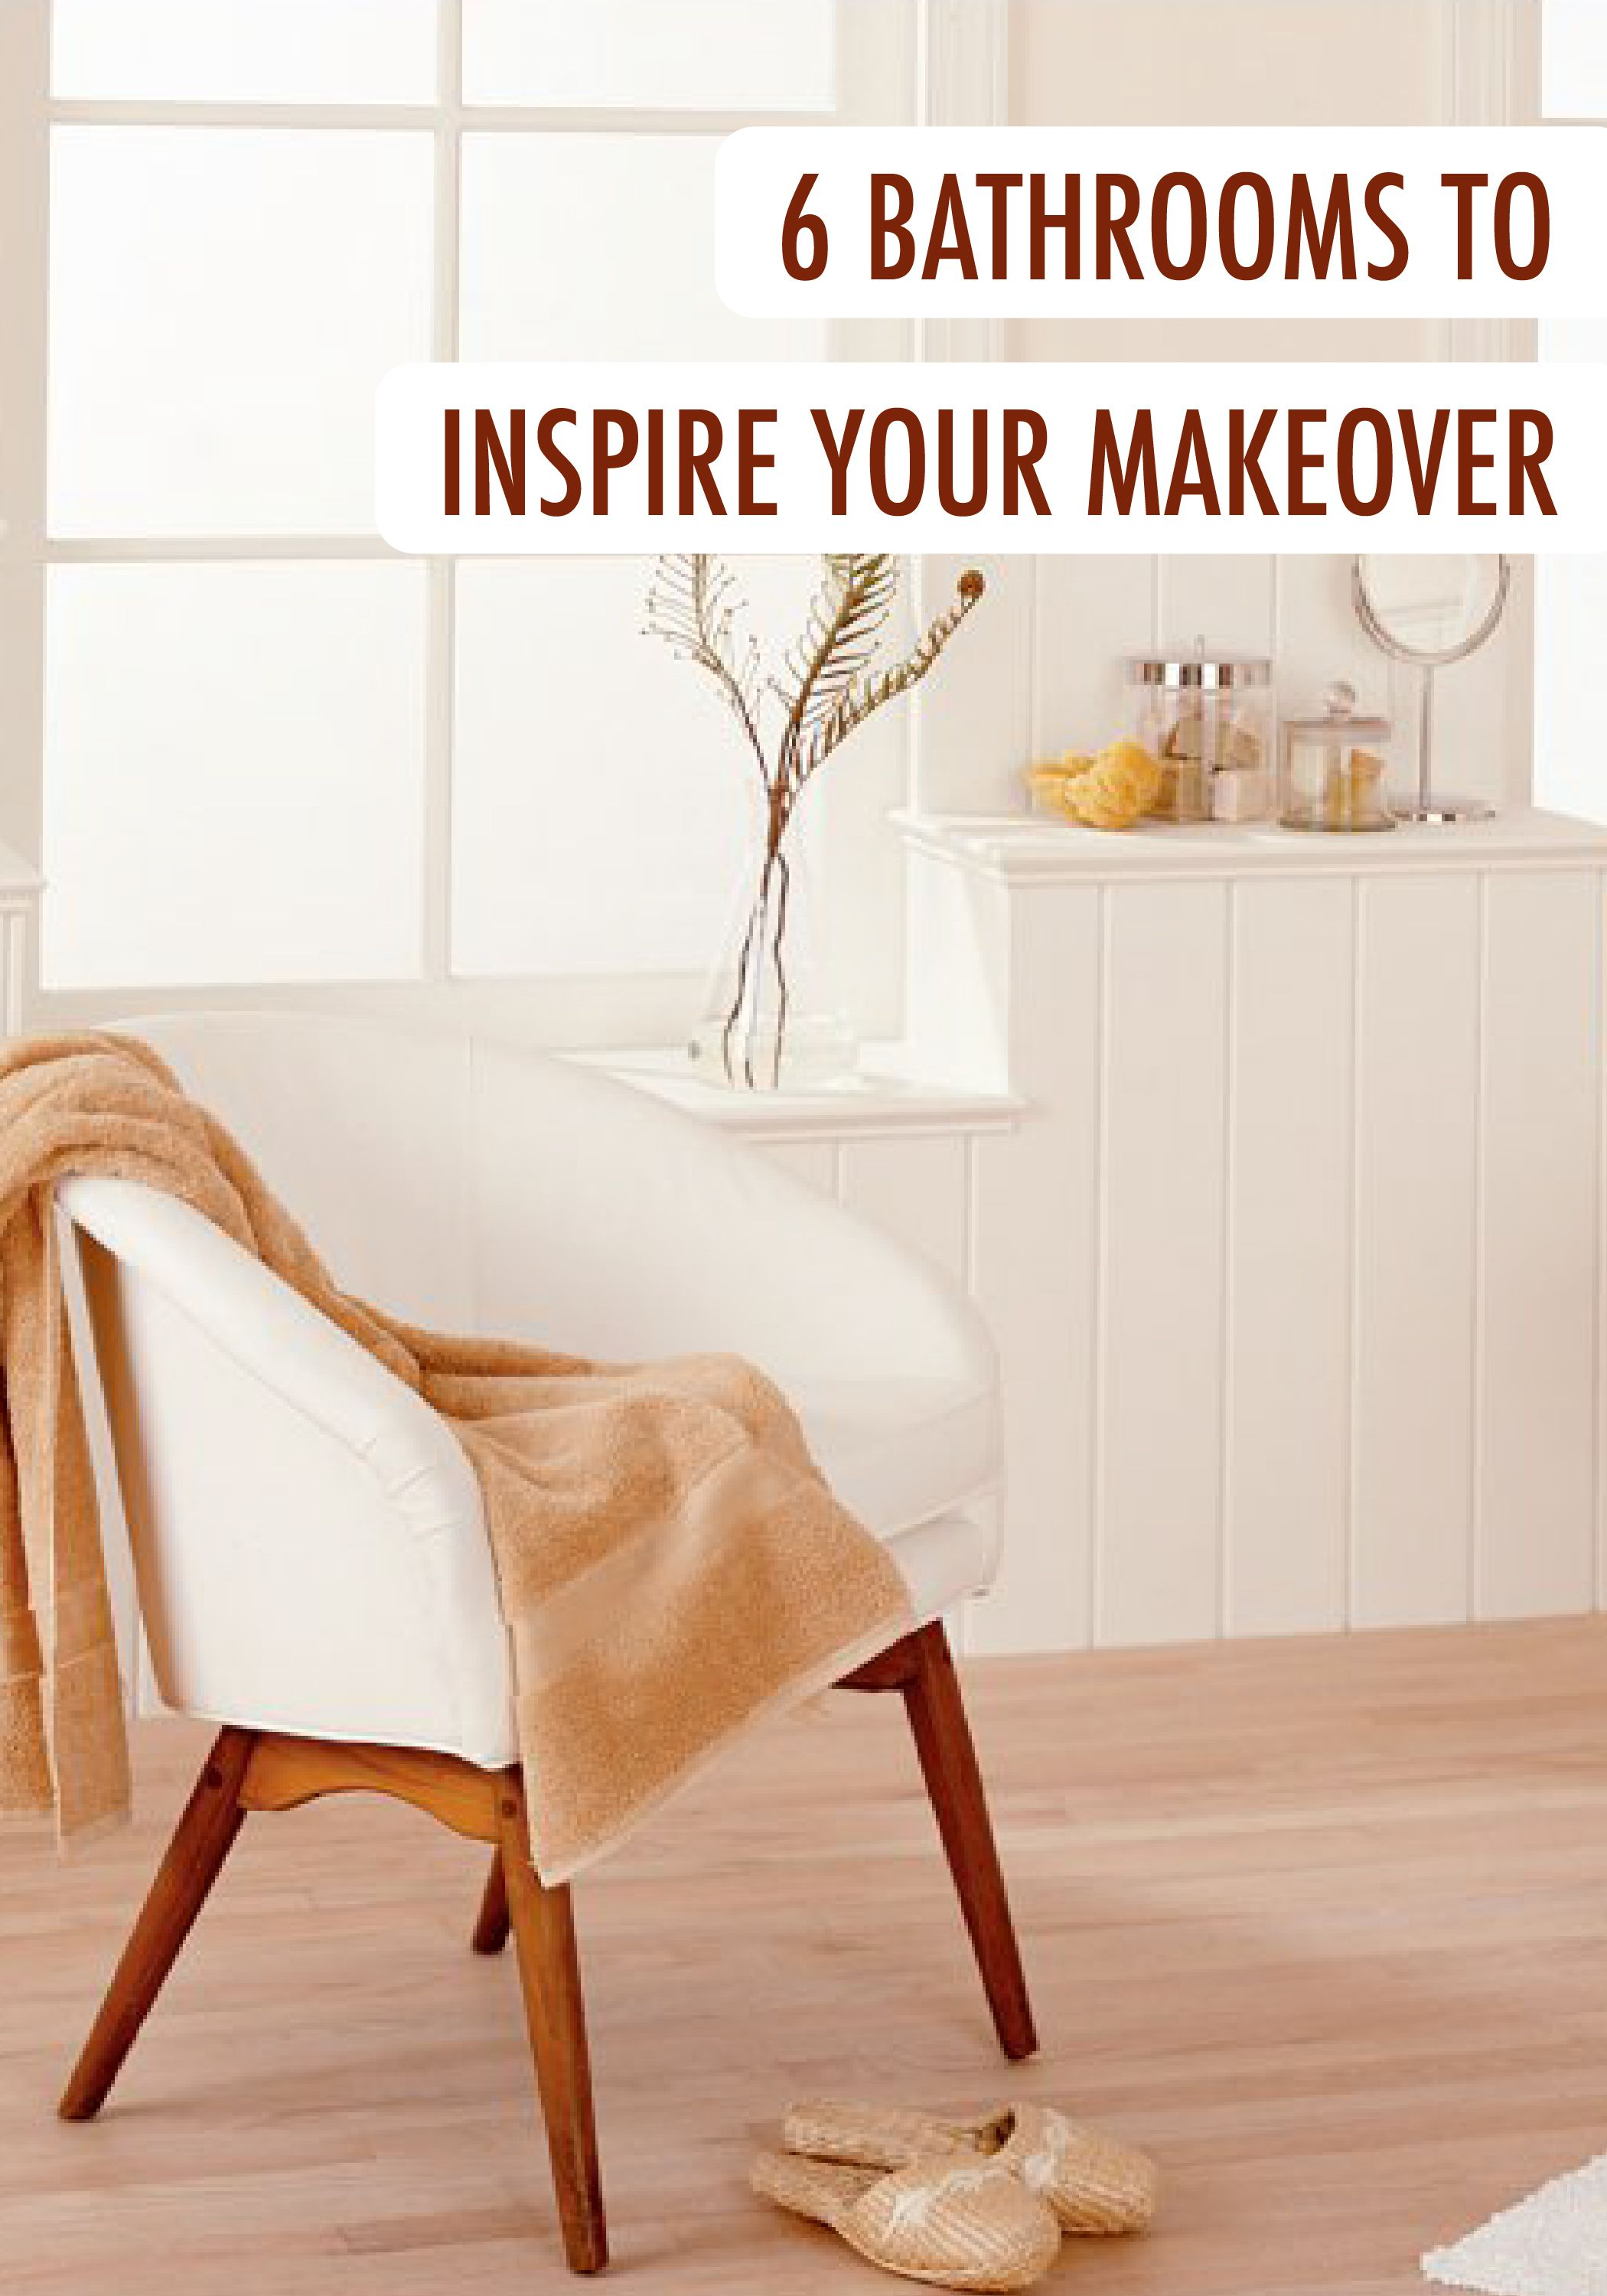 Time To Redo Your Bathroom With Design Ideas Like Textured Walls - Redo your bathroom